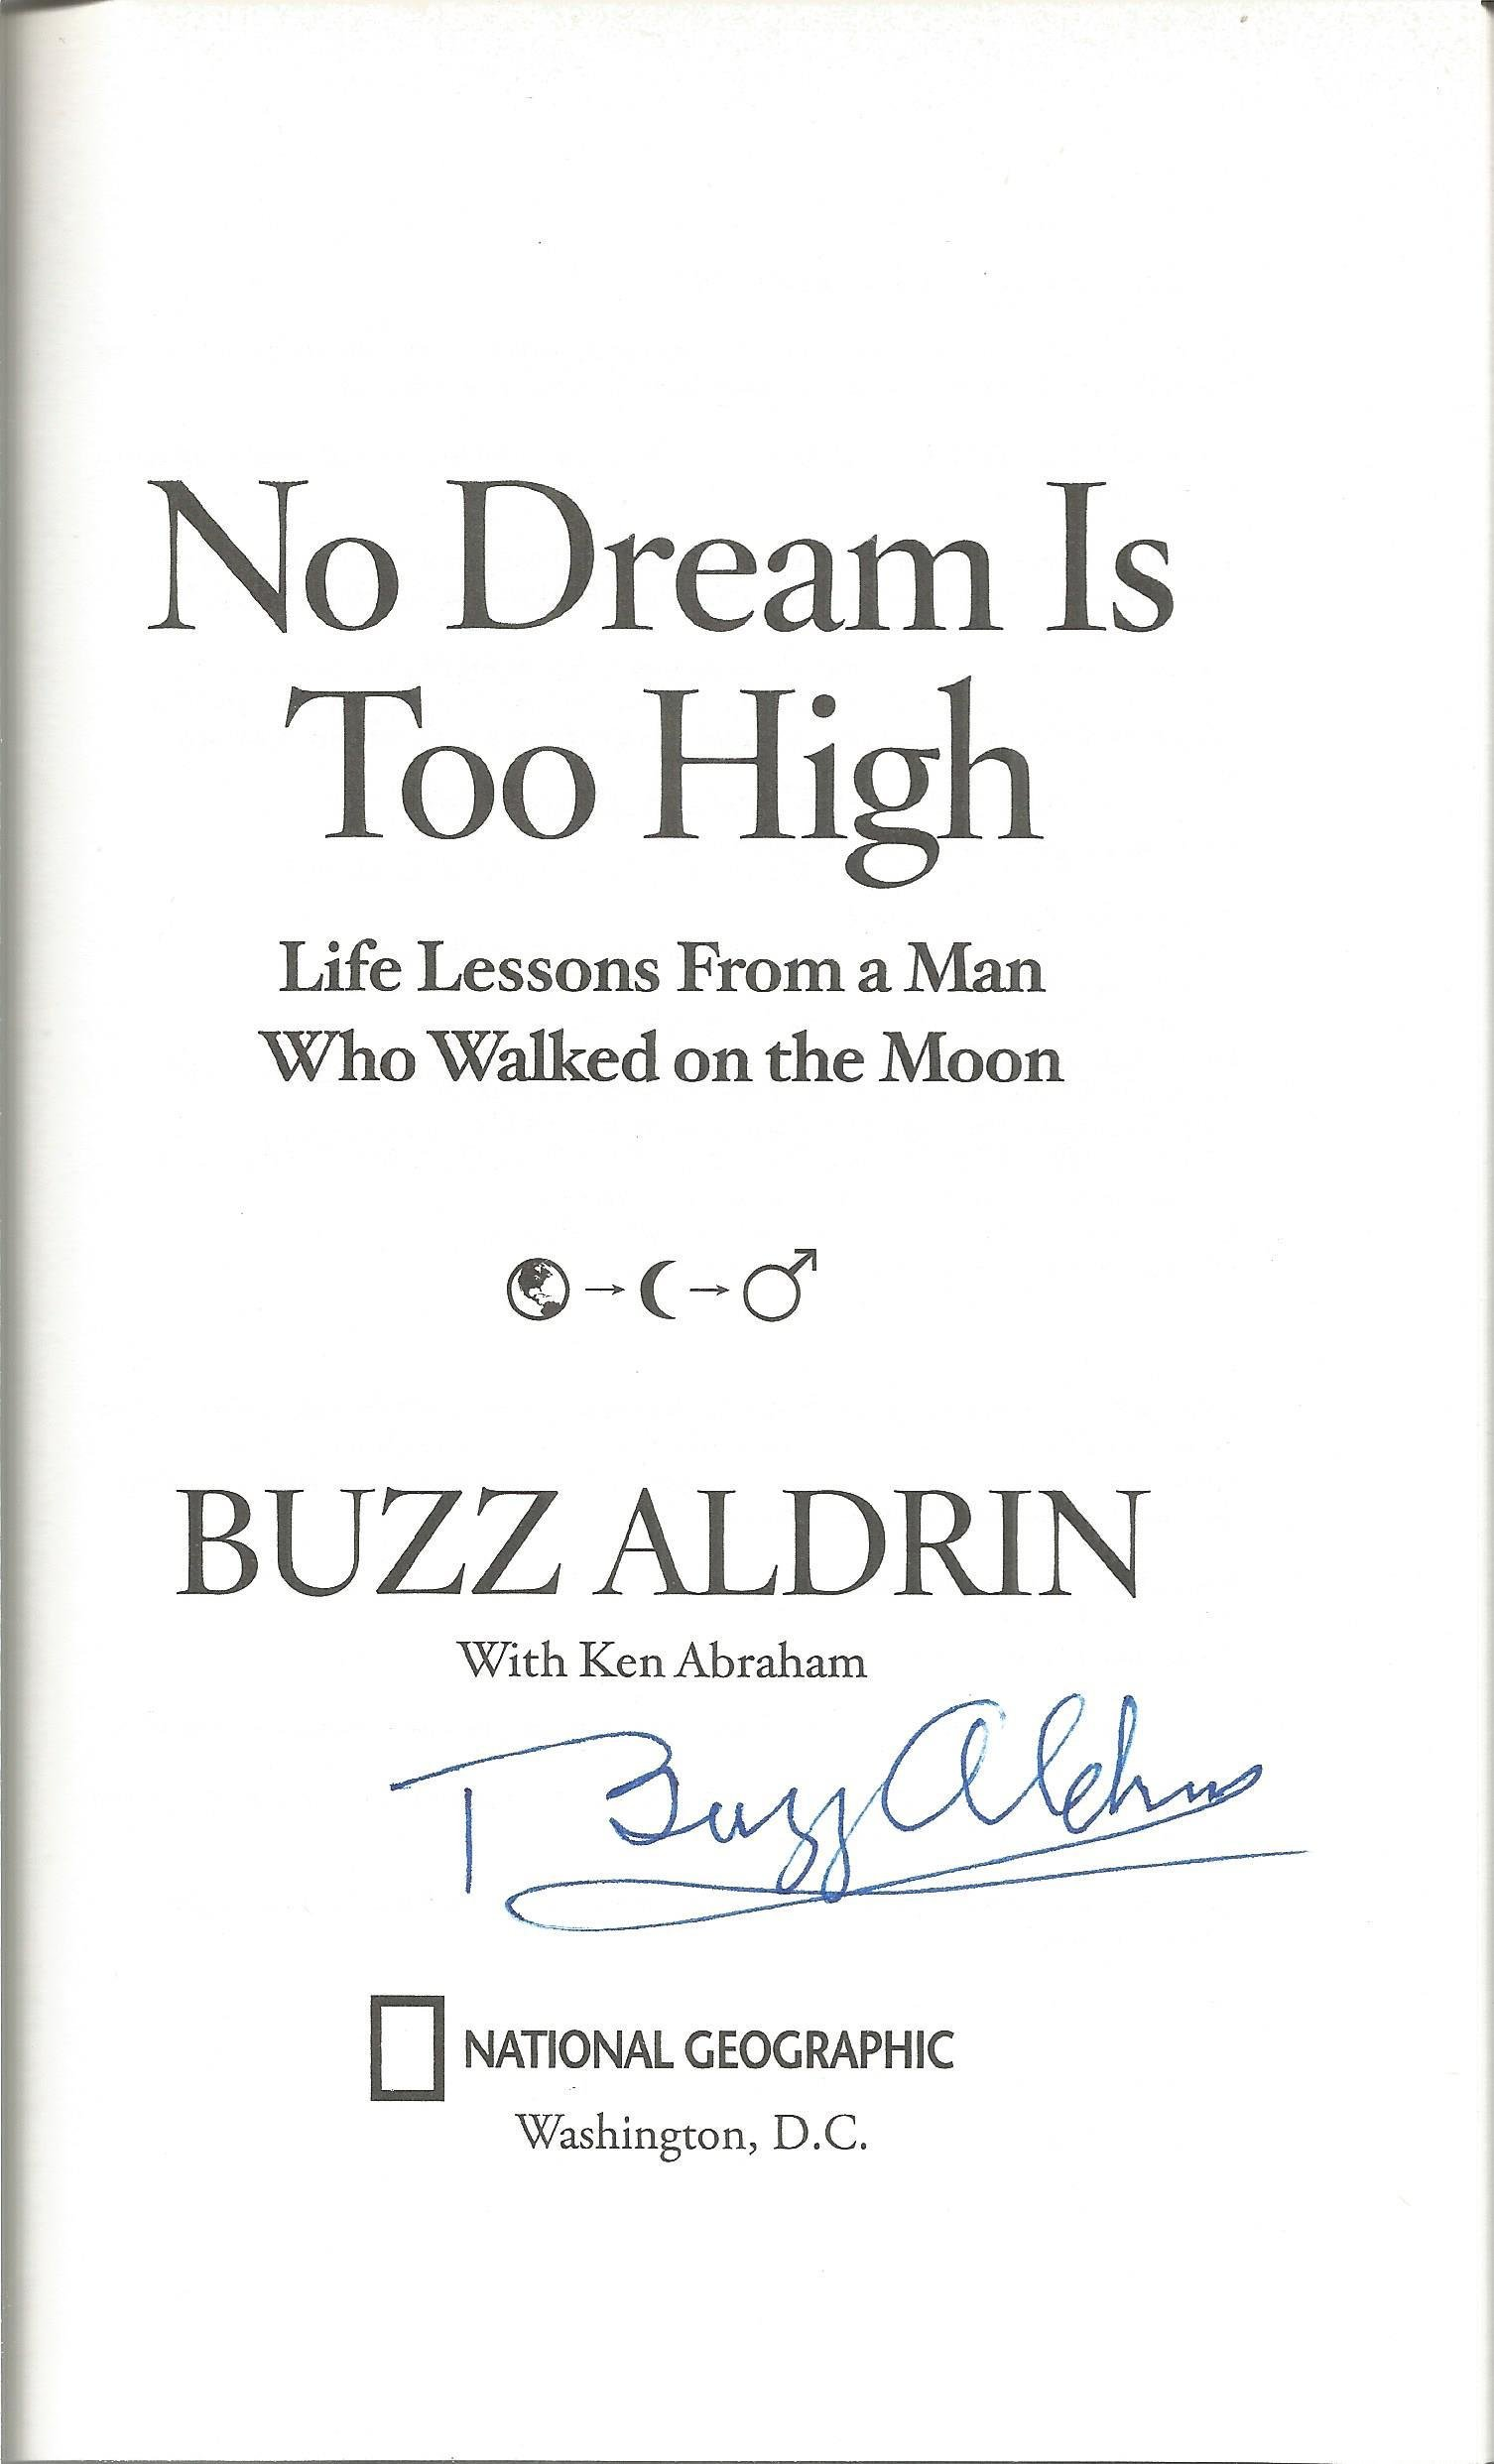 Buzz Aldrin signed No Dream is Too High hardback book.